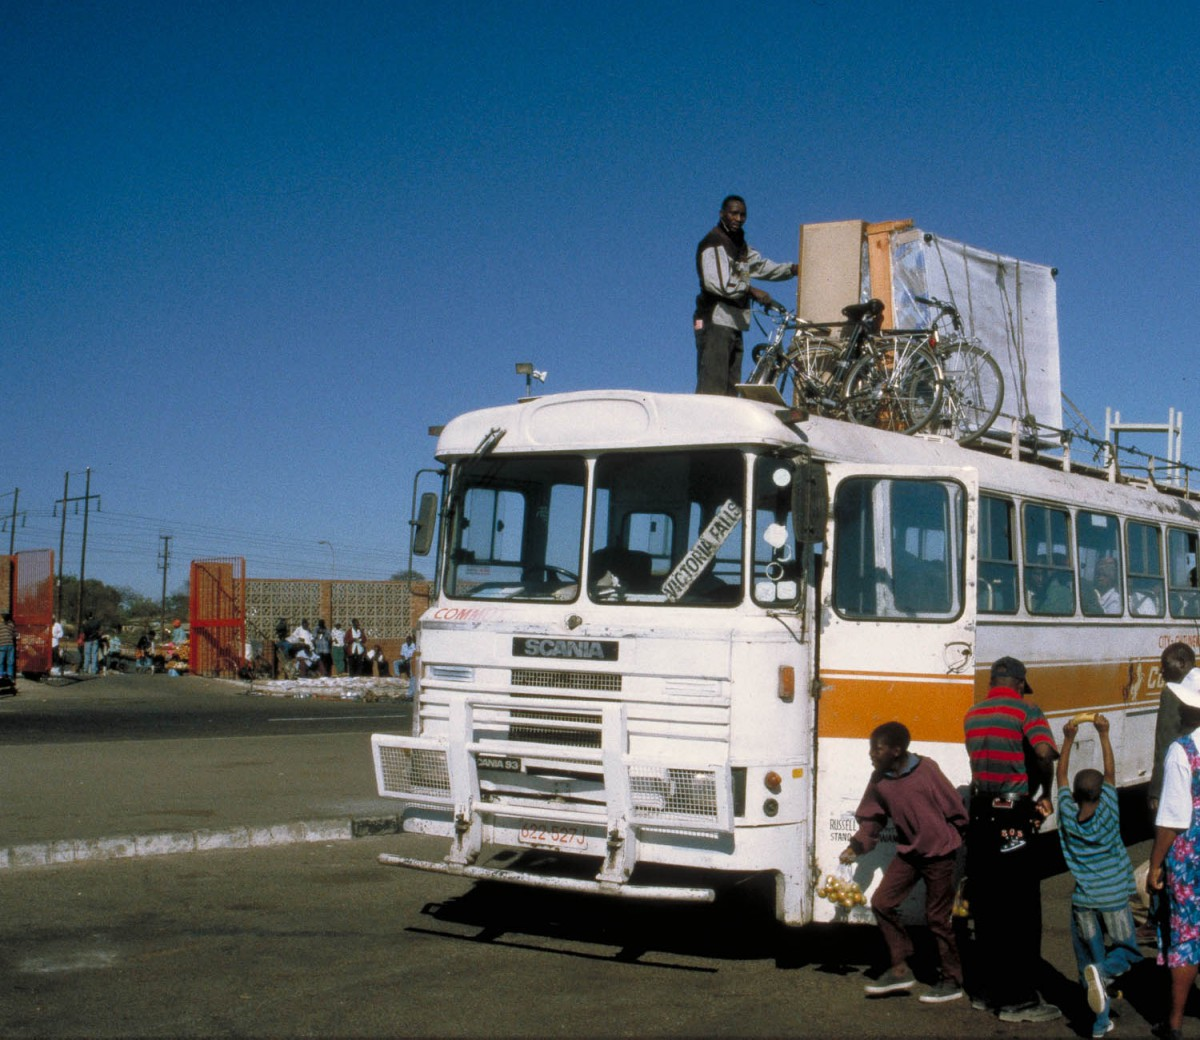 bicycles on top of the bus